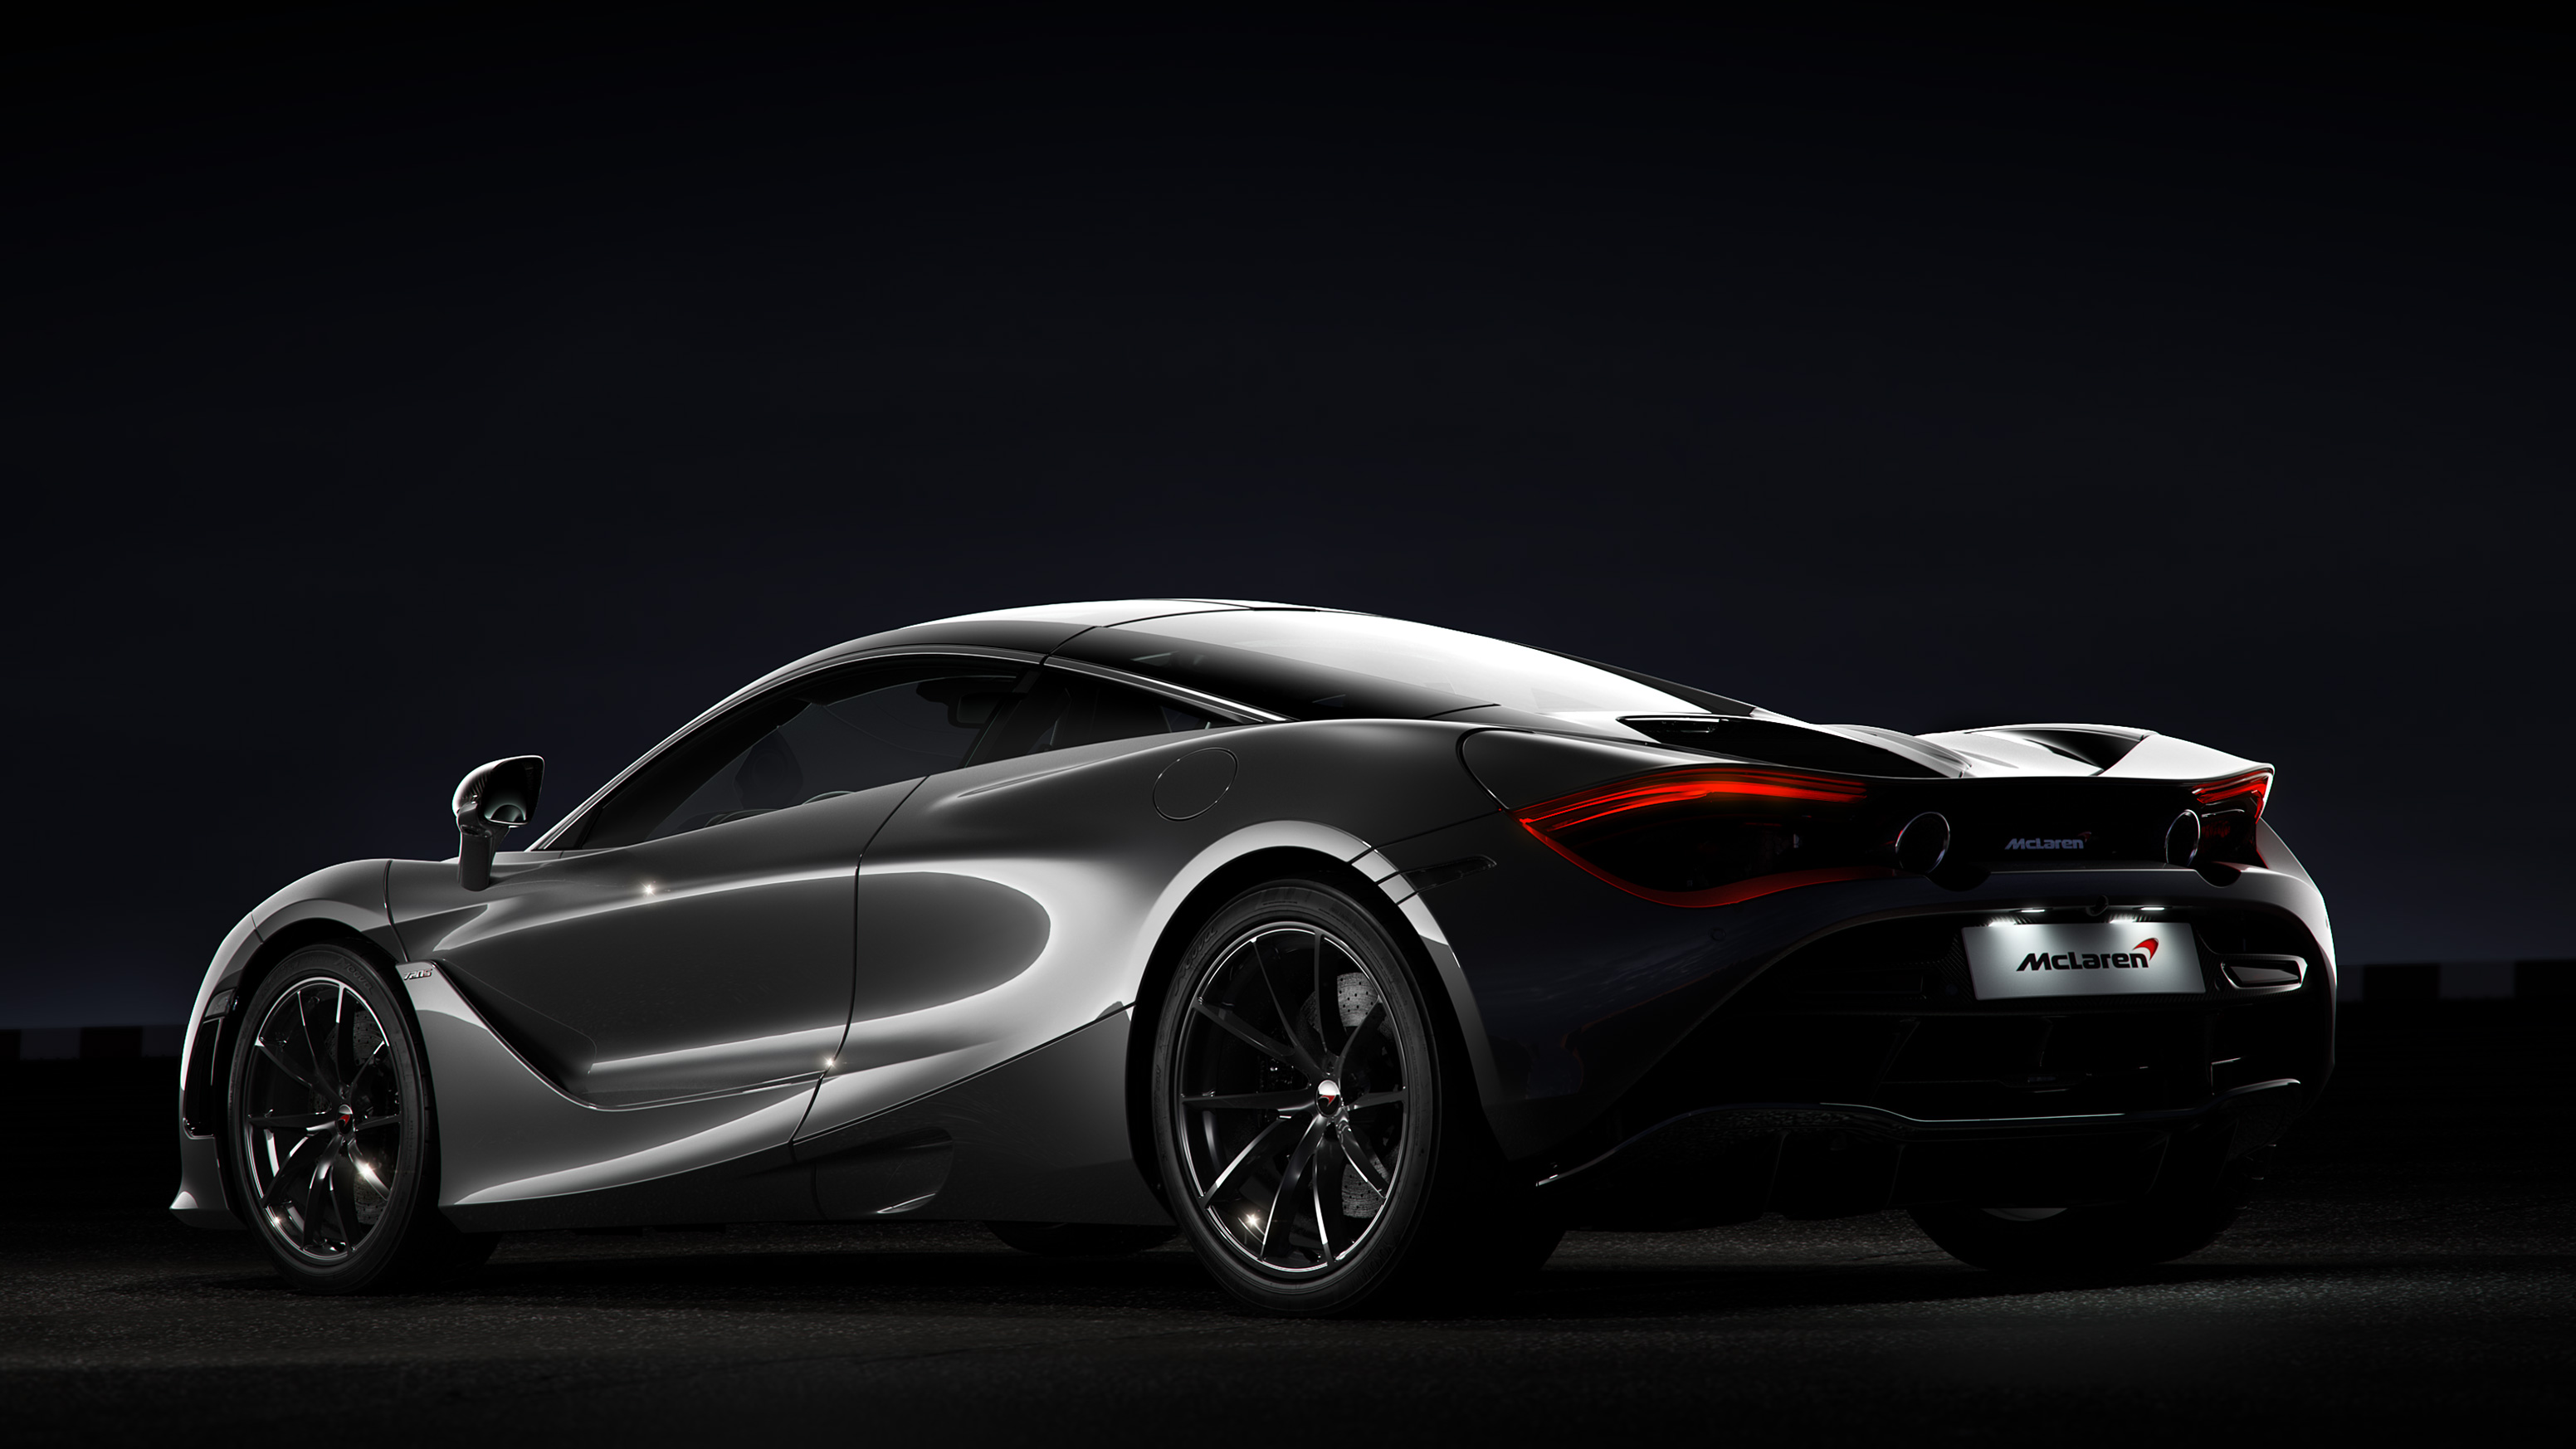 Mclaren 720s Hd Cars 4k Wallpapers Images Backgrounds Photos And Pictures